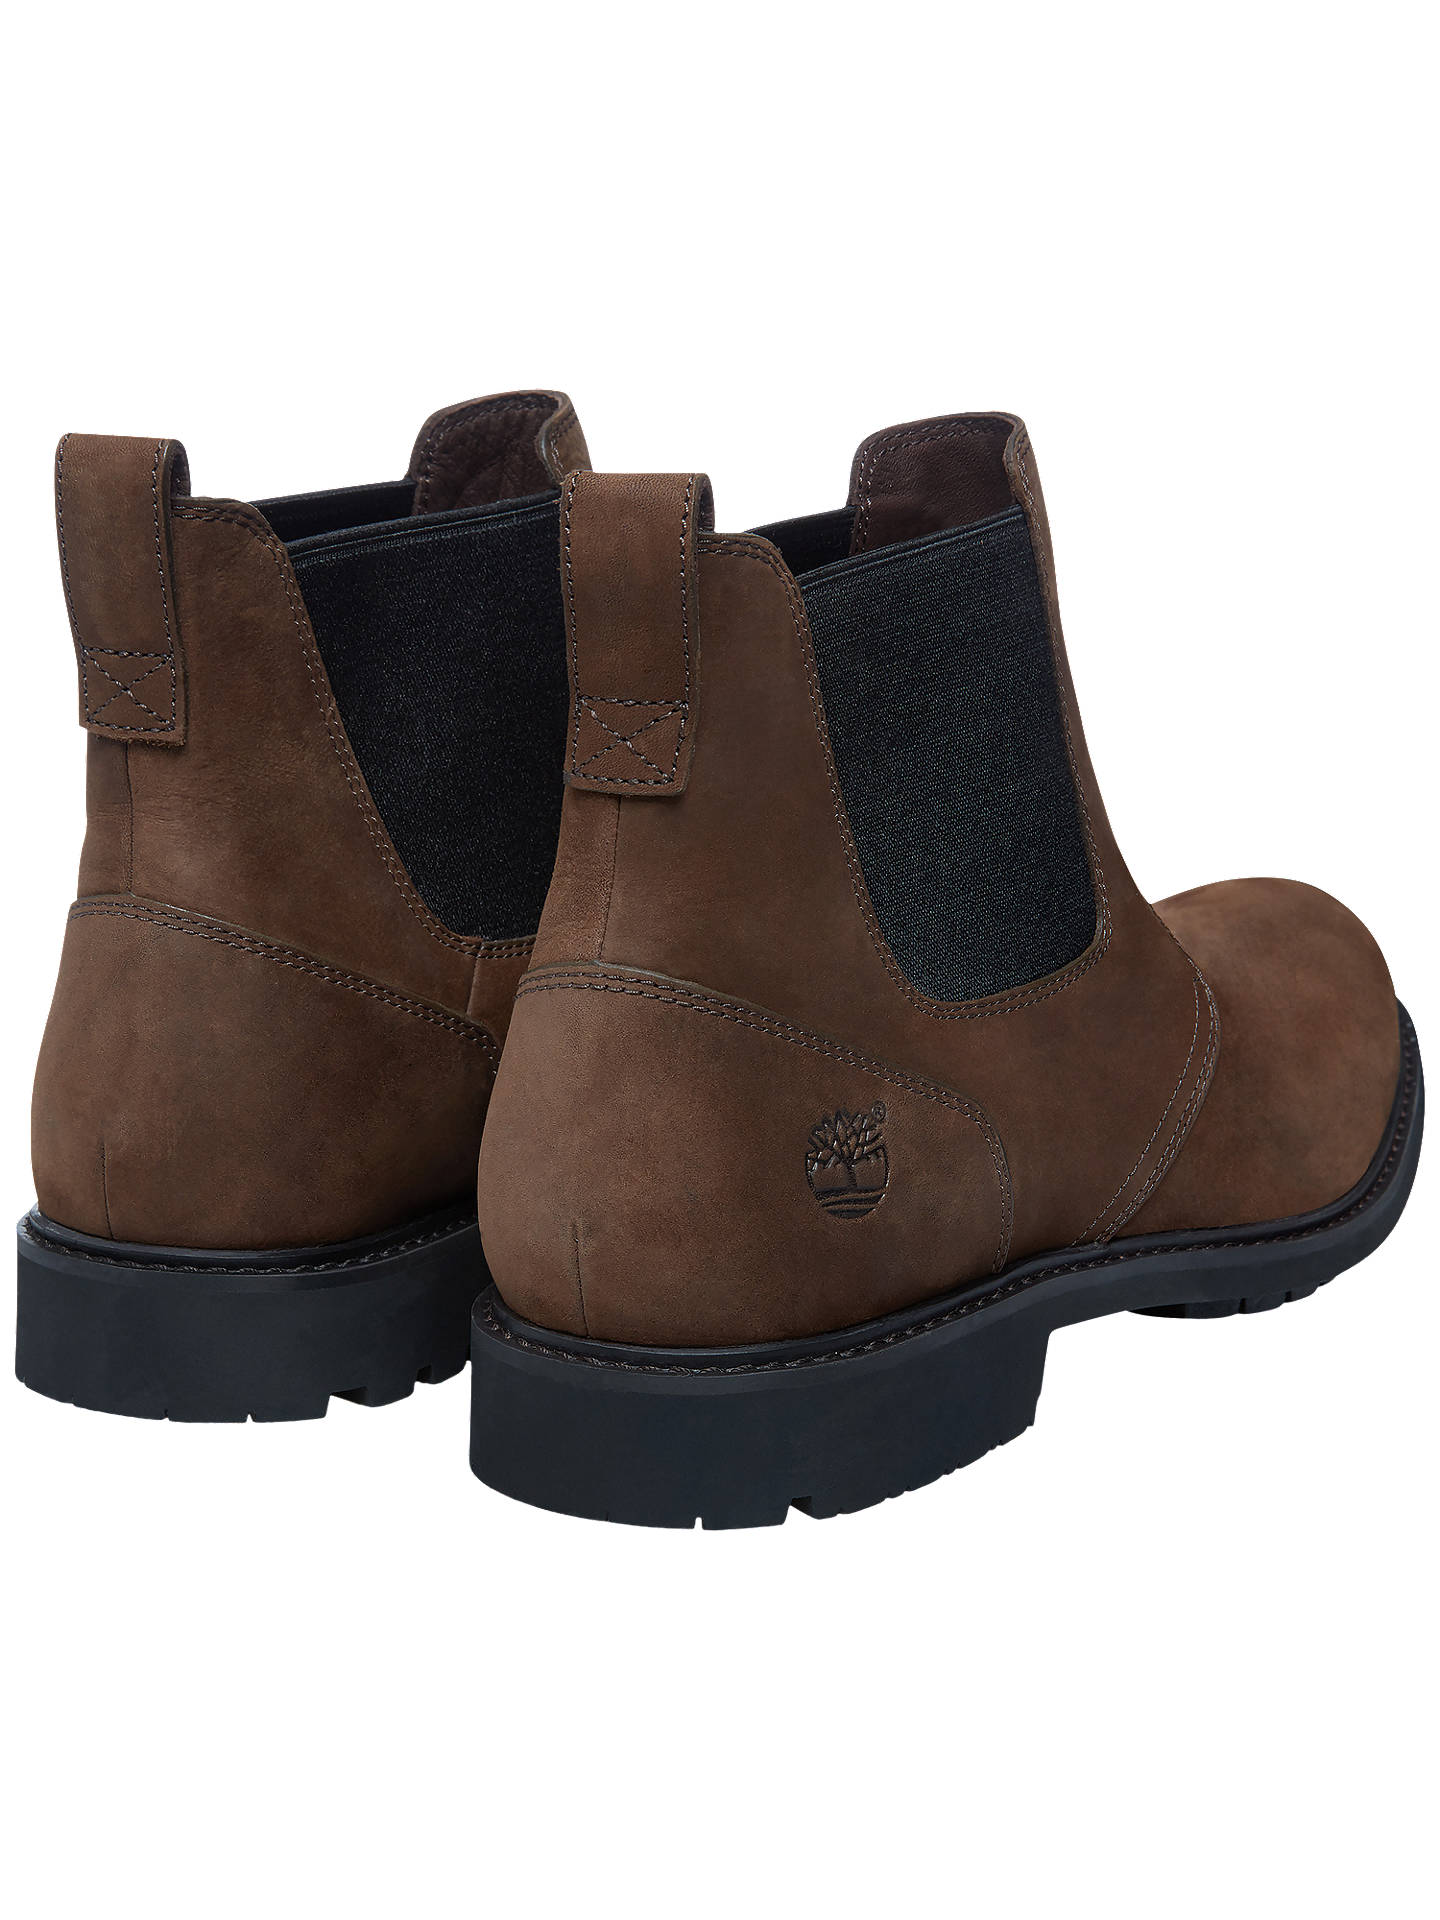 Details about Mens Timberland Earthkeepers Stormbuck Chelsea Dark Brown Ankle Boots Size